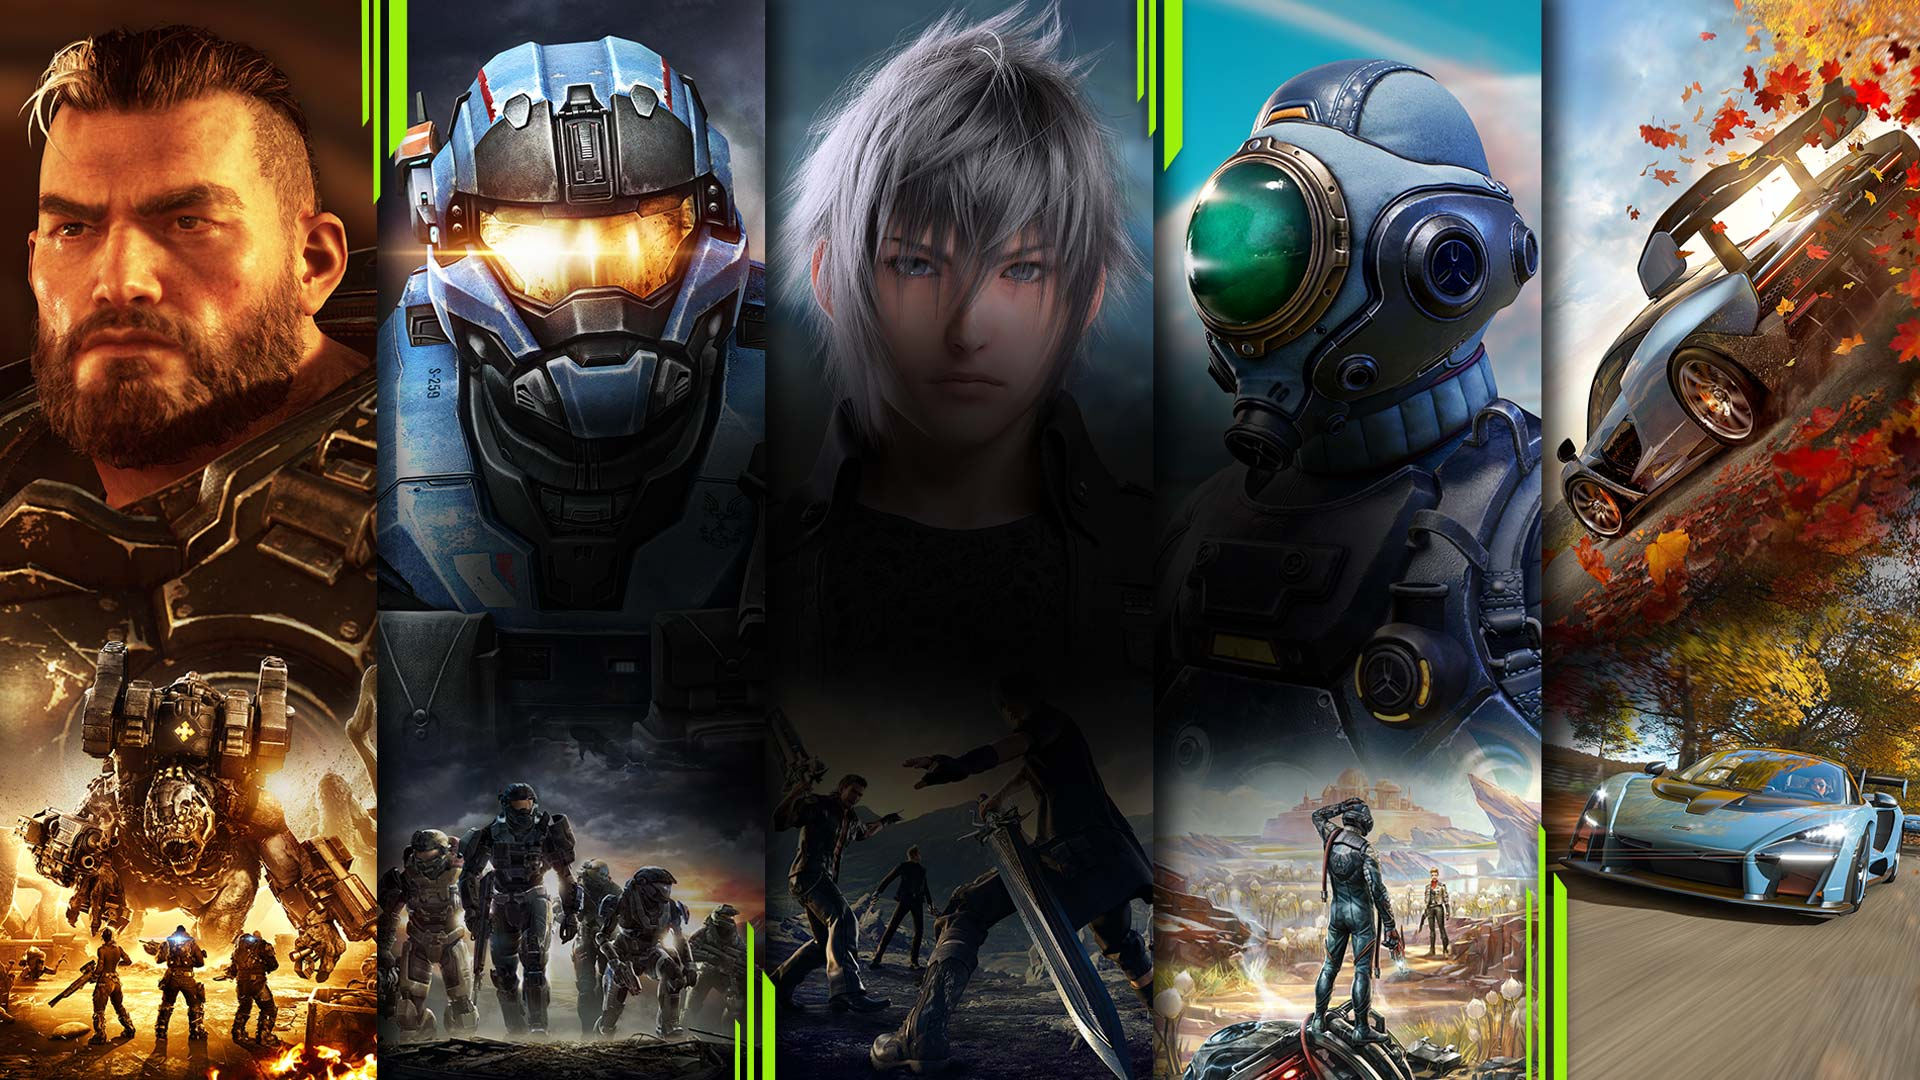 Un collage di giochi disponibili su Xbox Game Pass per PC, inclusi Gears of War, Halo, Final Fantasy, The Outer Worlds e Forza.